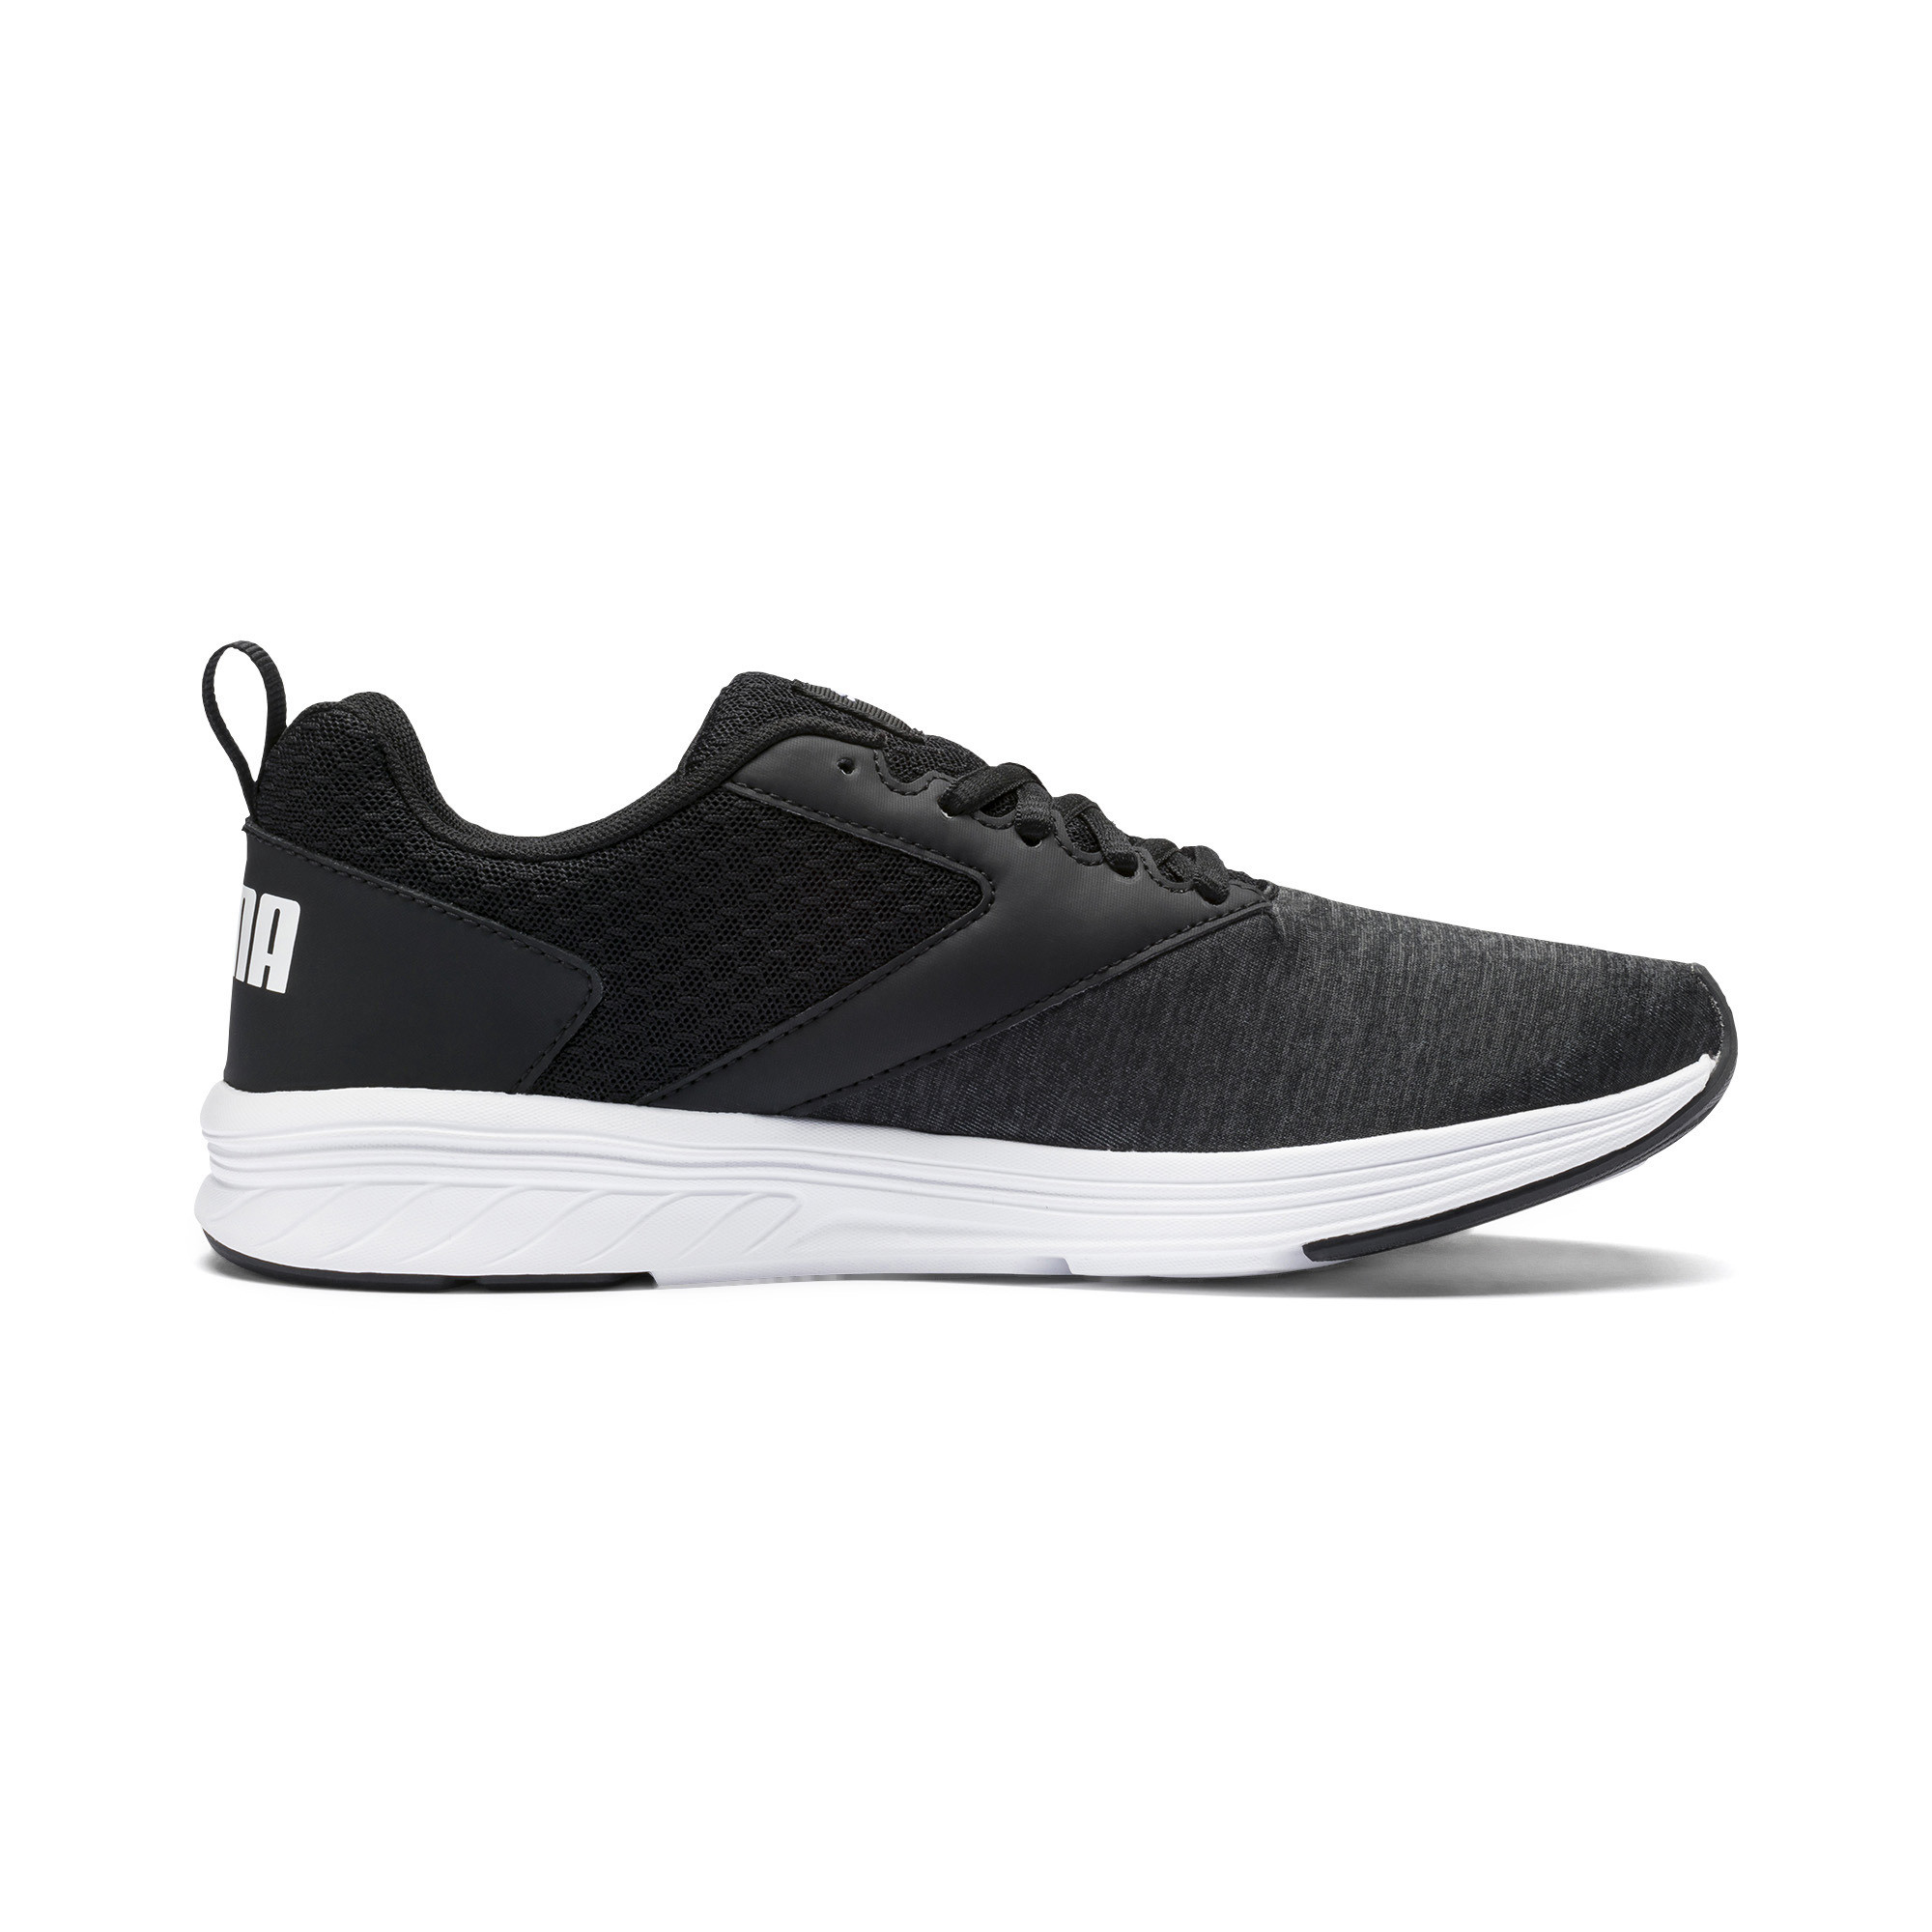 PUMA-Men-039-s-NRGY-Comet-Running-Shoes thumbnail 6